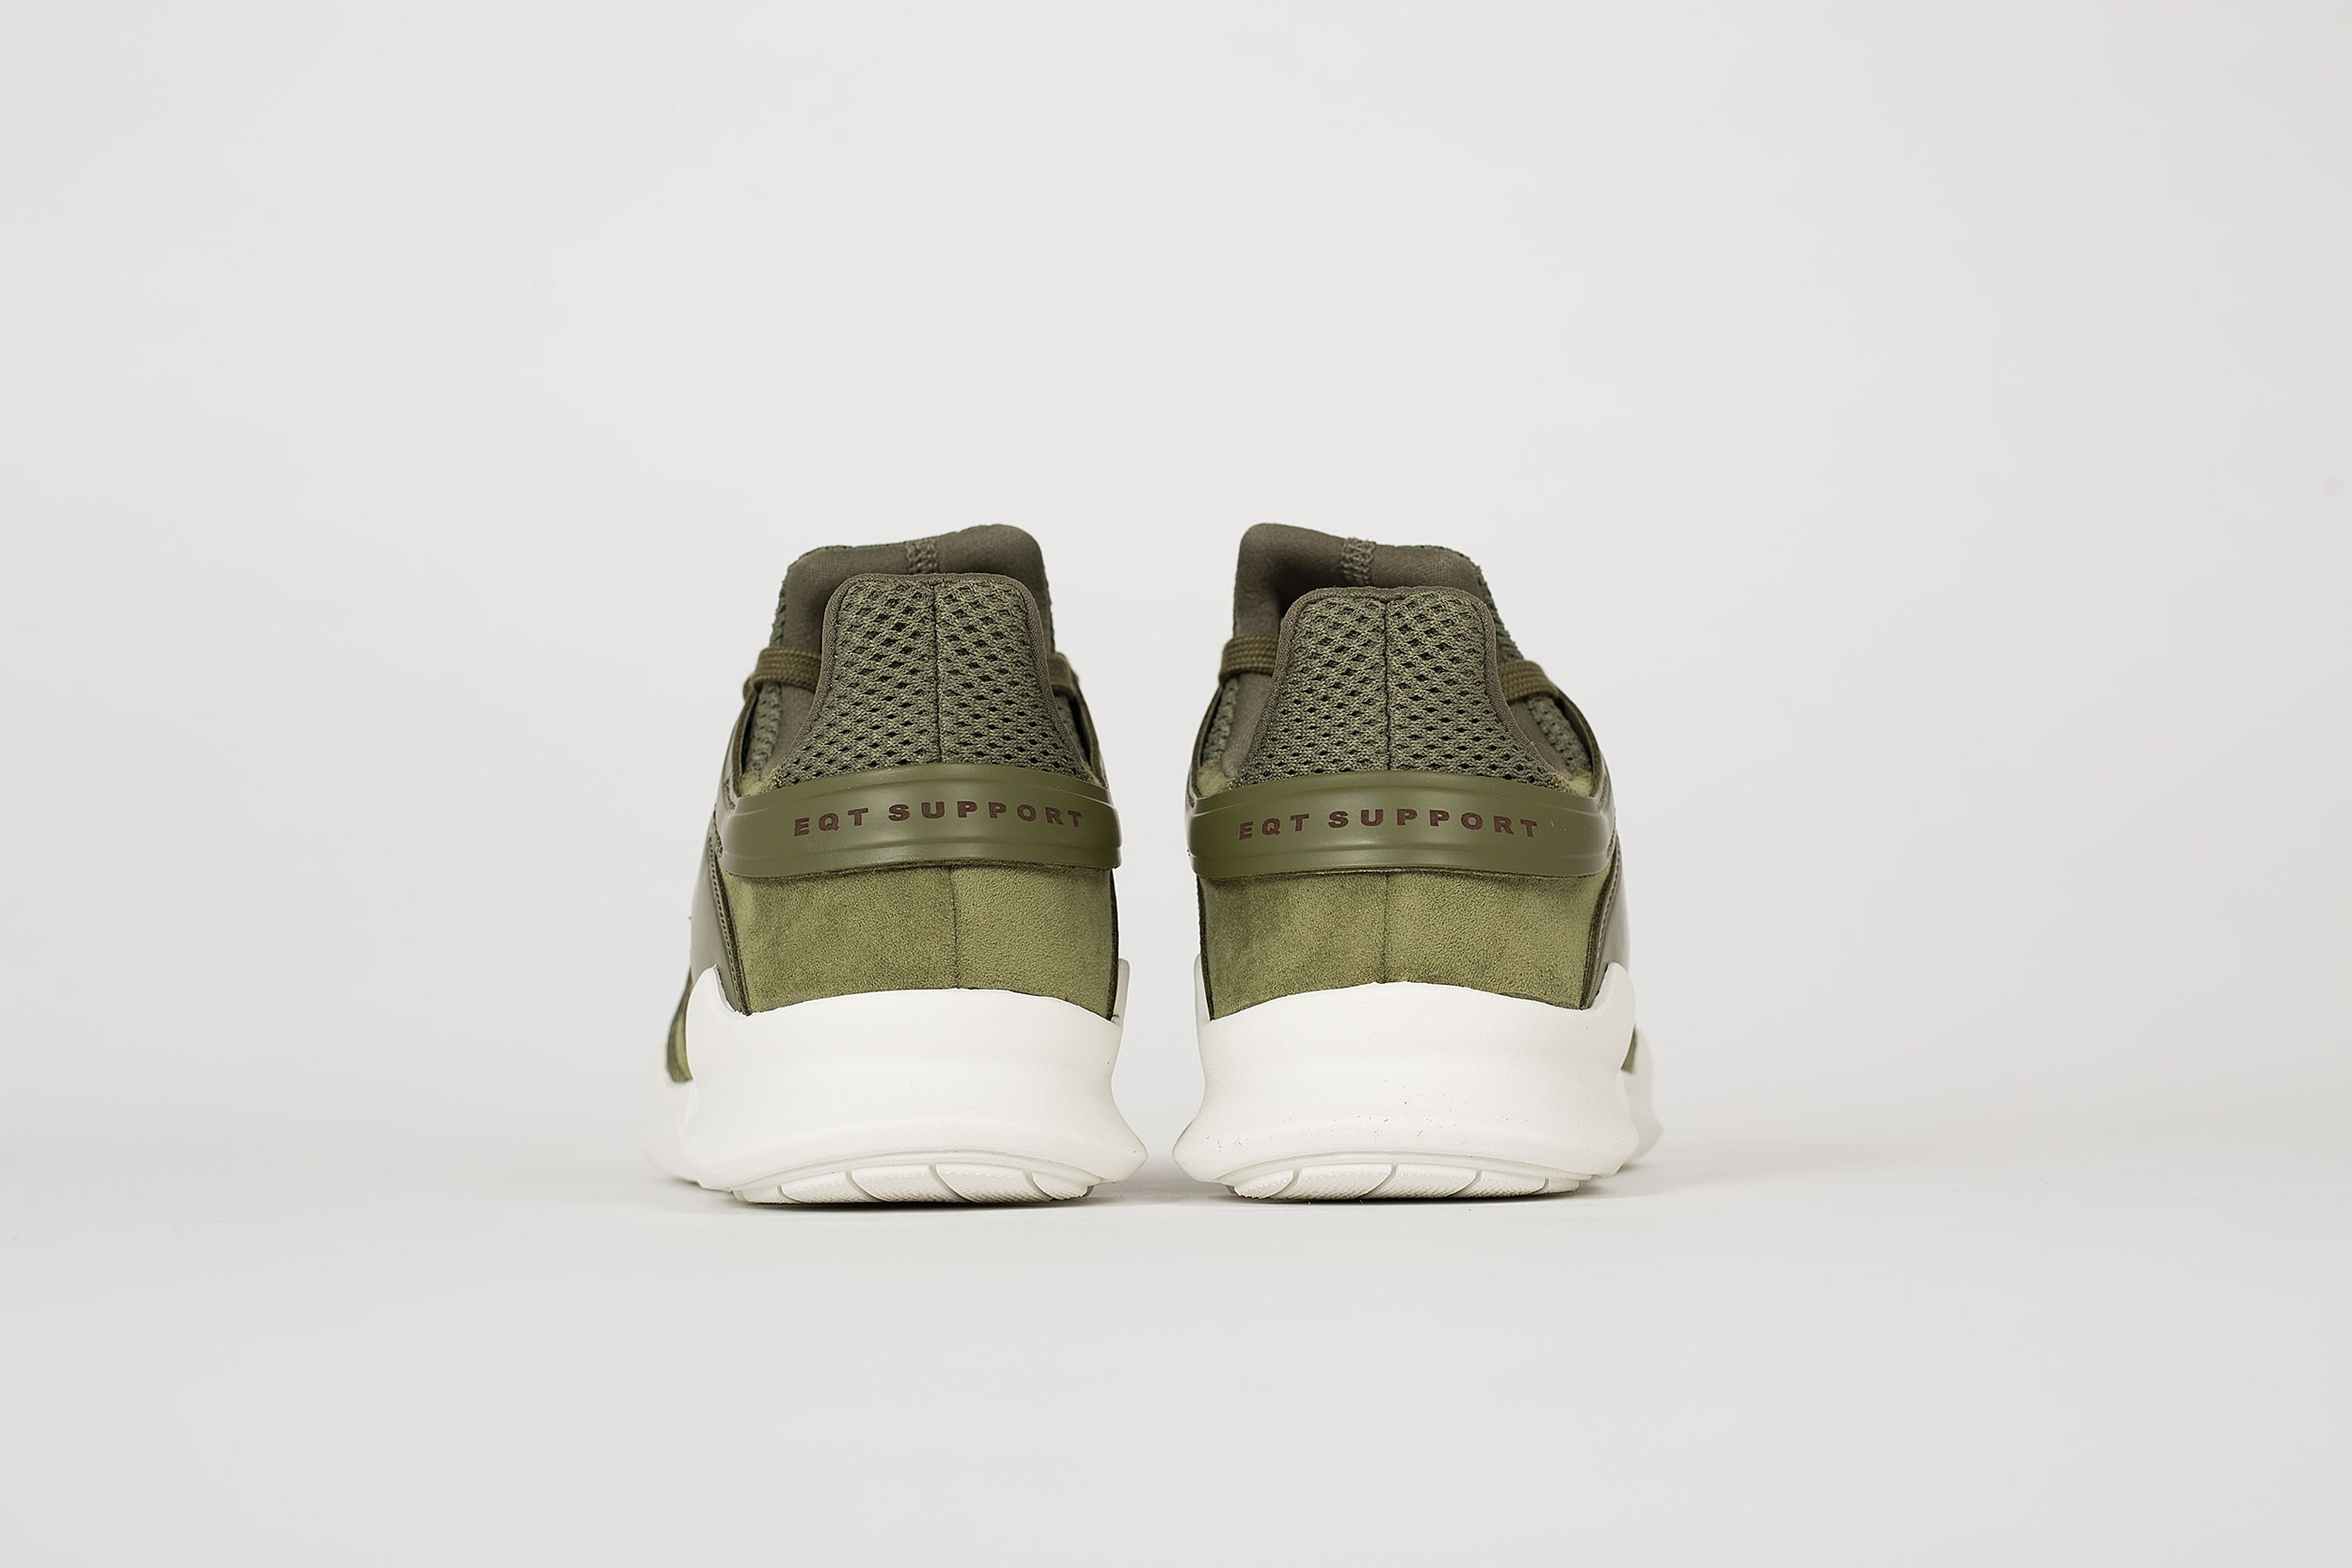 adidas-equipment-support-adv-olive-ba8328-2